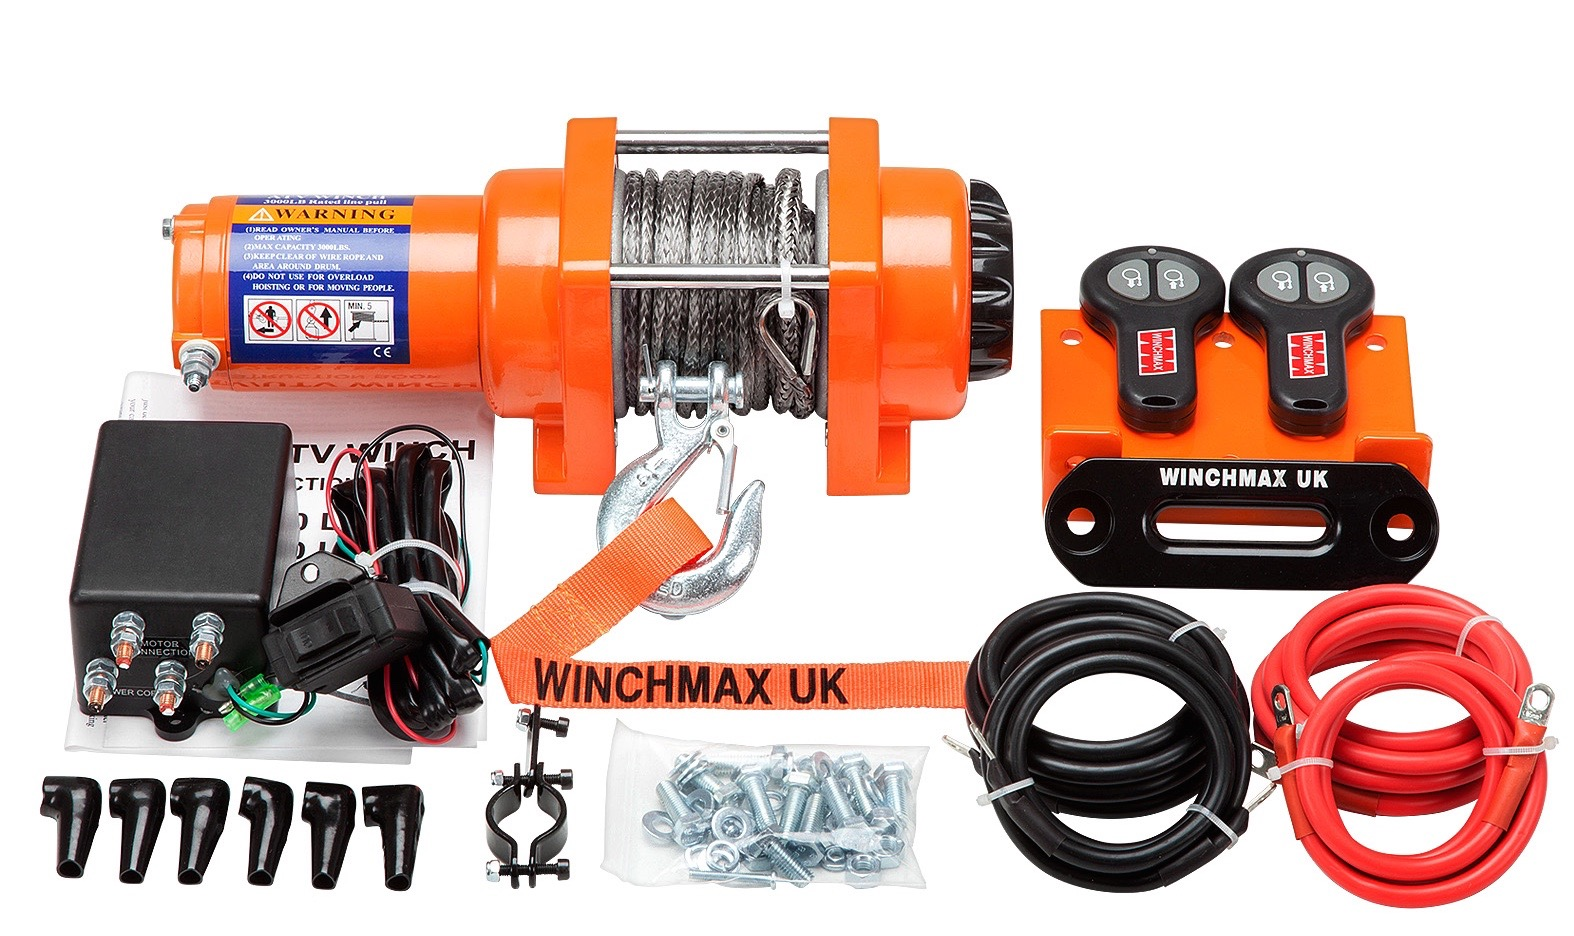 WINCHMAX 12V ELECTRIC ATV BOAT TRAILER WINCH 3000 lb  SYNTHETIC ROPE MODEL WITH WIRELESS REMOTES